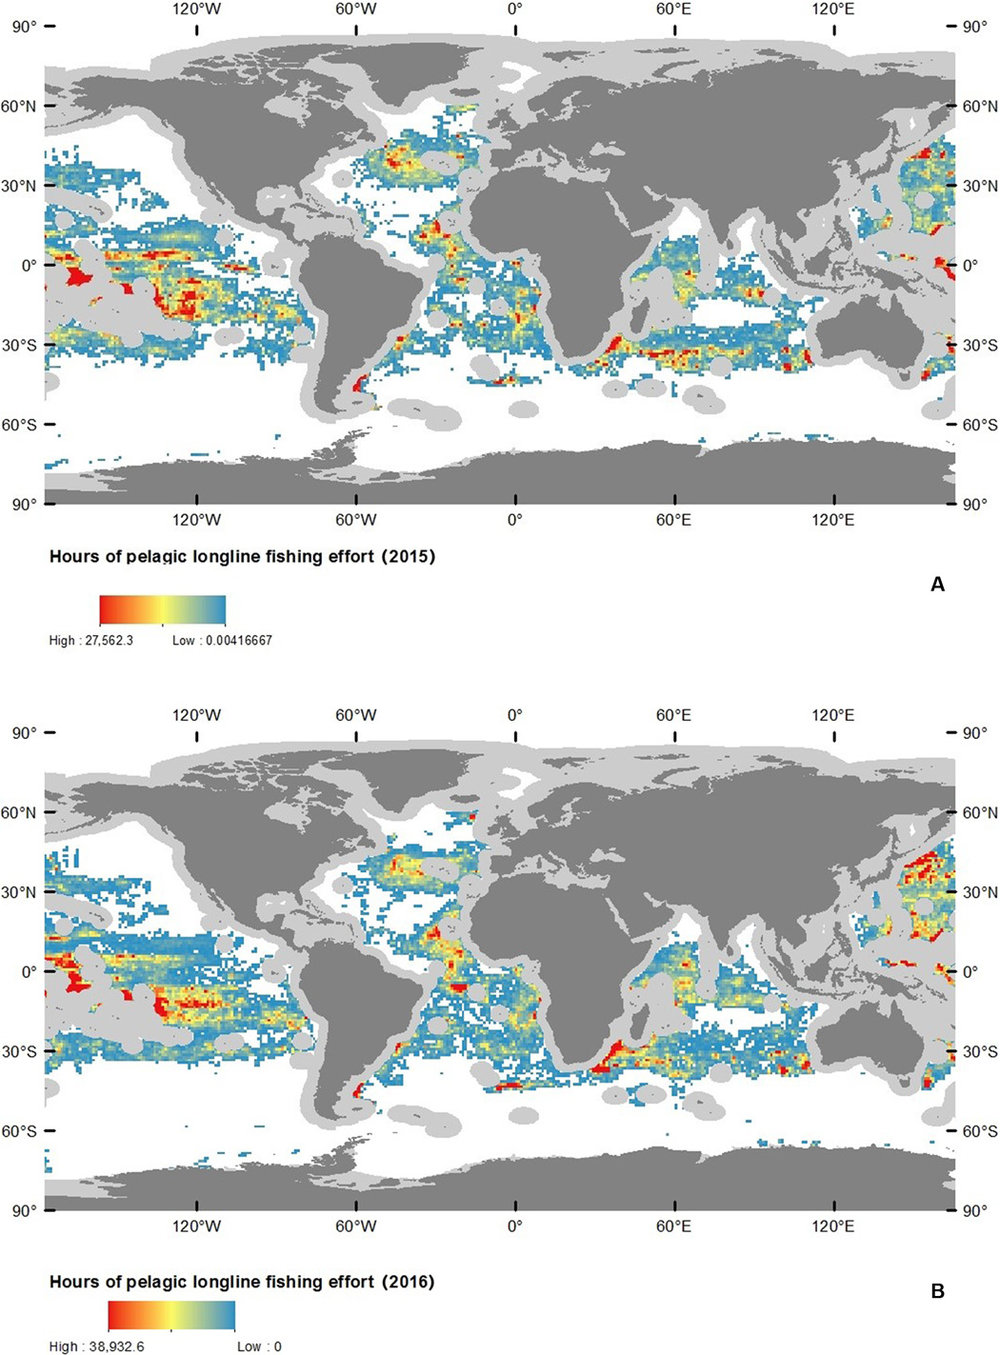 Fig. 1 Distribution of global pelagic drifting longline fishing in ABNJ in 2015 and 2016. ( A ) 2015. ( B ) 2016. Light gray areas depict exclusive economic zones (EEZs) that were excluded from this study.